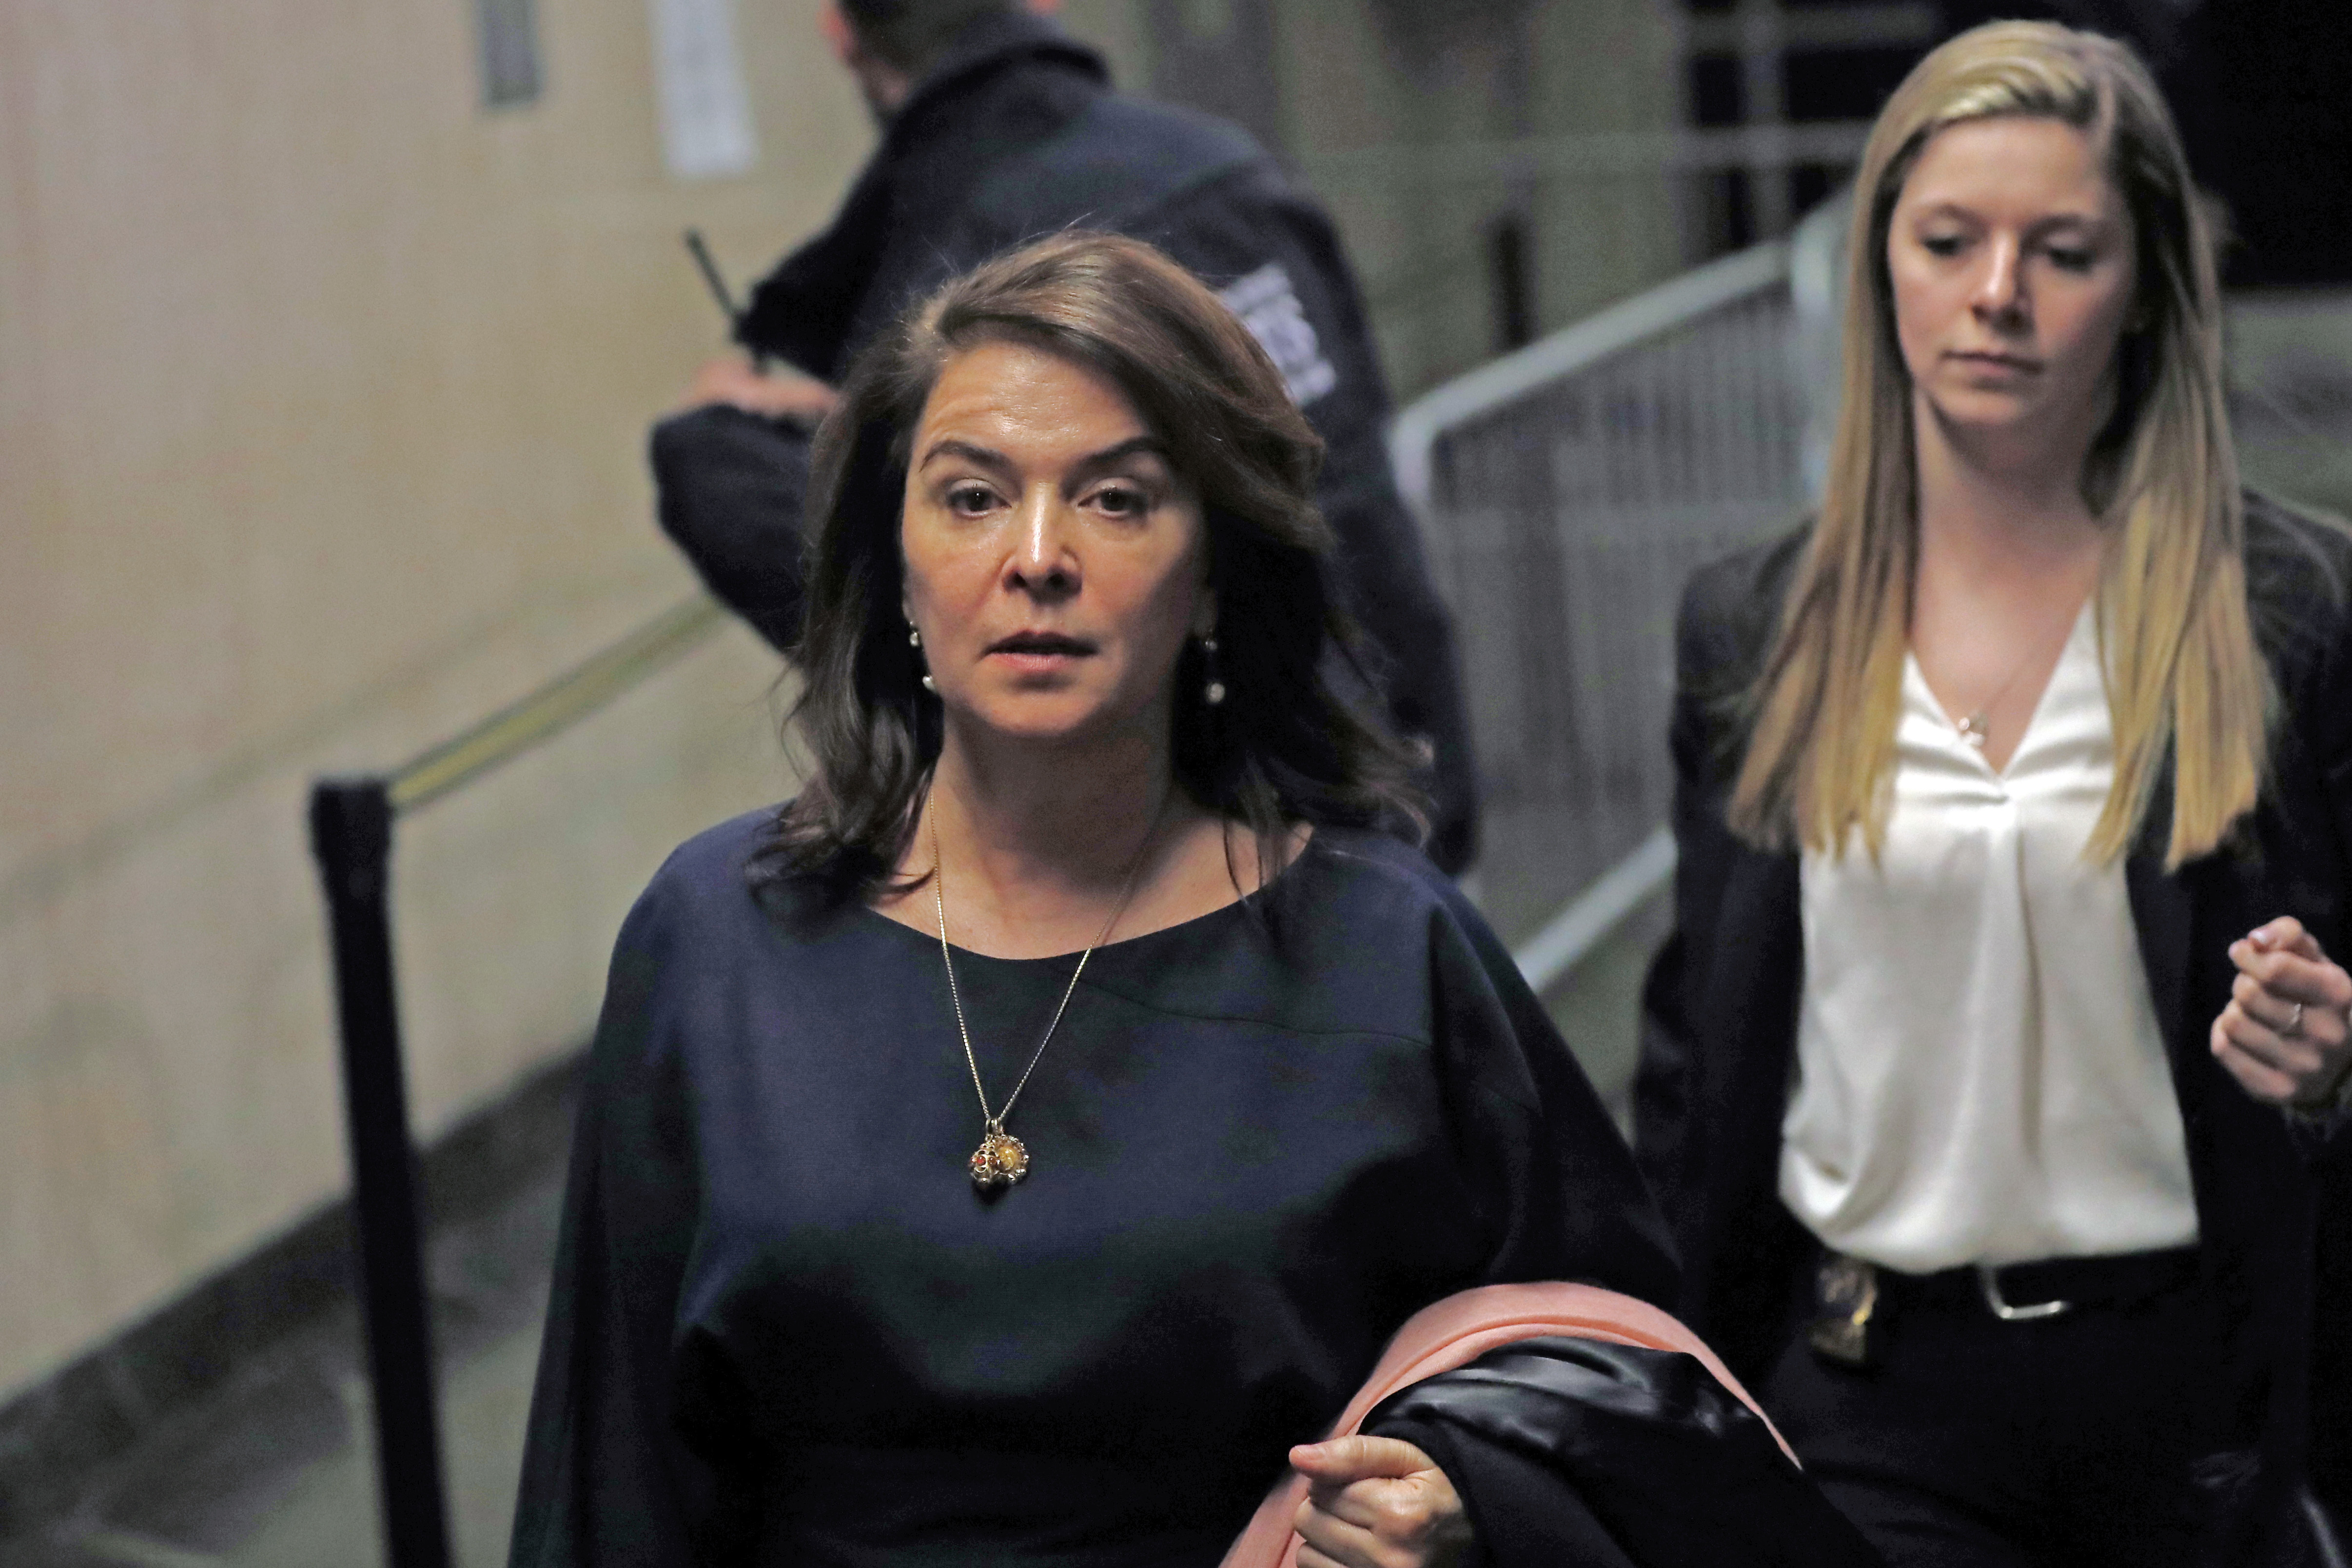 Actress Annabella Sciorra, left, leaves Manhattan Criminal Court after appearing at Harvey Weinstein's rape and sexual assault trial, Thursday, Jan. 23, 2020, in New York.